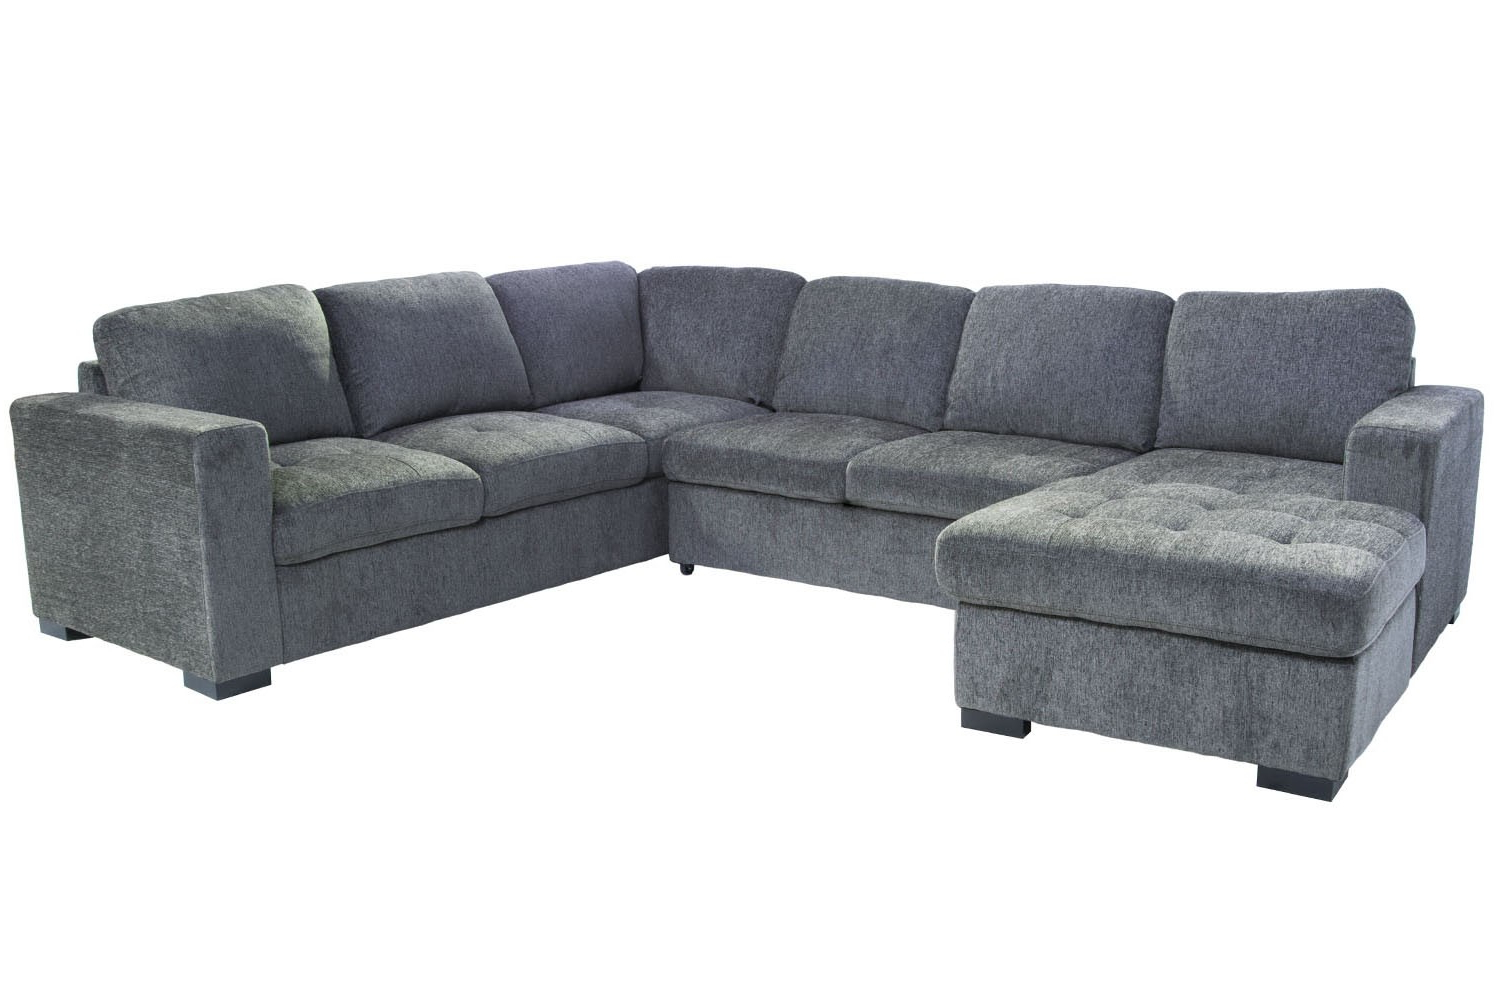 Most Recent Aquarius Light Grey 2 Piece Sectionals With Laf Chaise For Claire 3 Piece Right Facing Chaise Sectional In Gray (View 15 of 20)